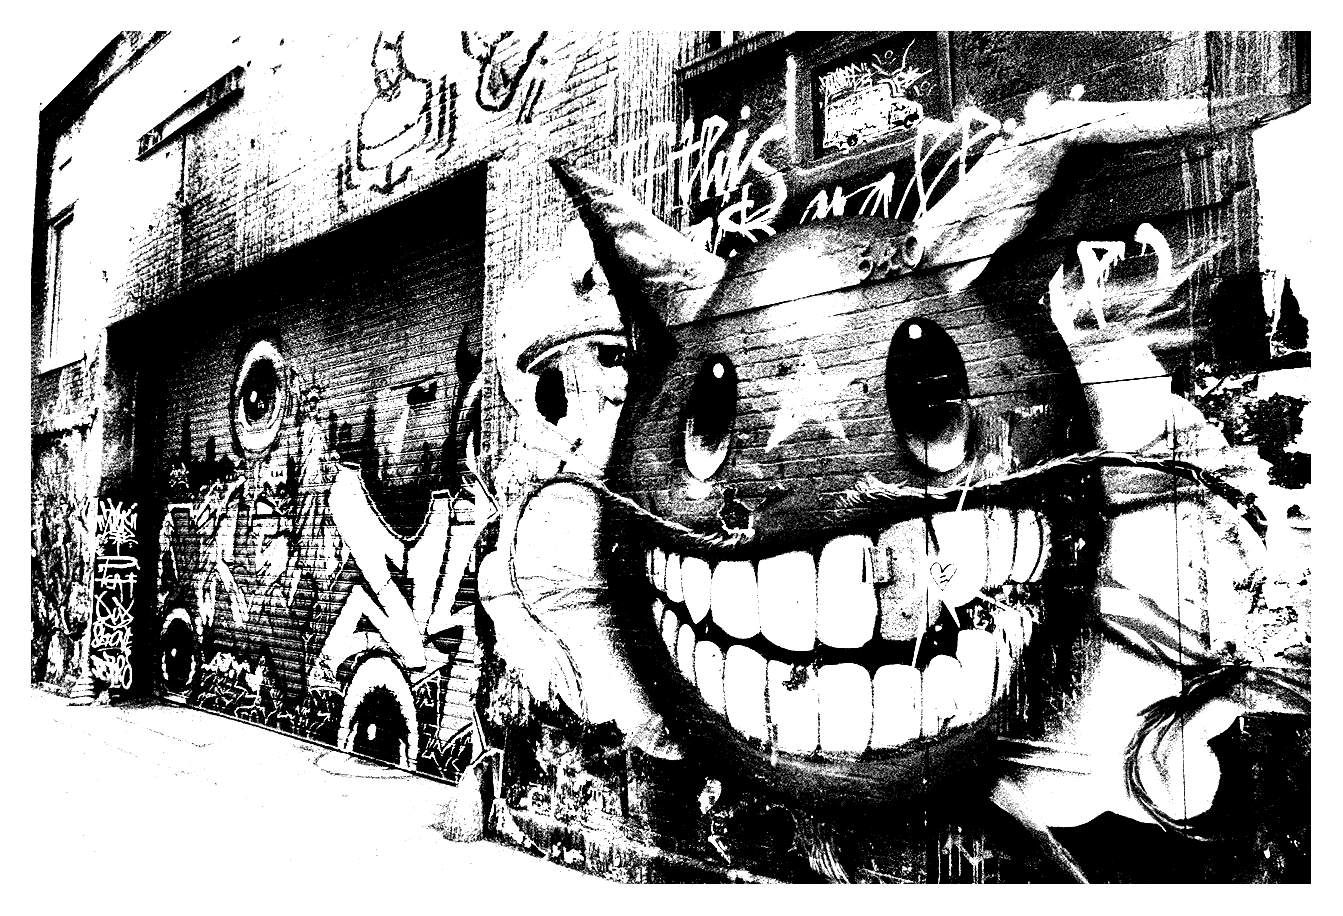 Graffiti alley tags et graffitis coloriages difficiles pour adultes - Dessin de tag a imprimer ...